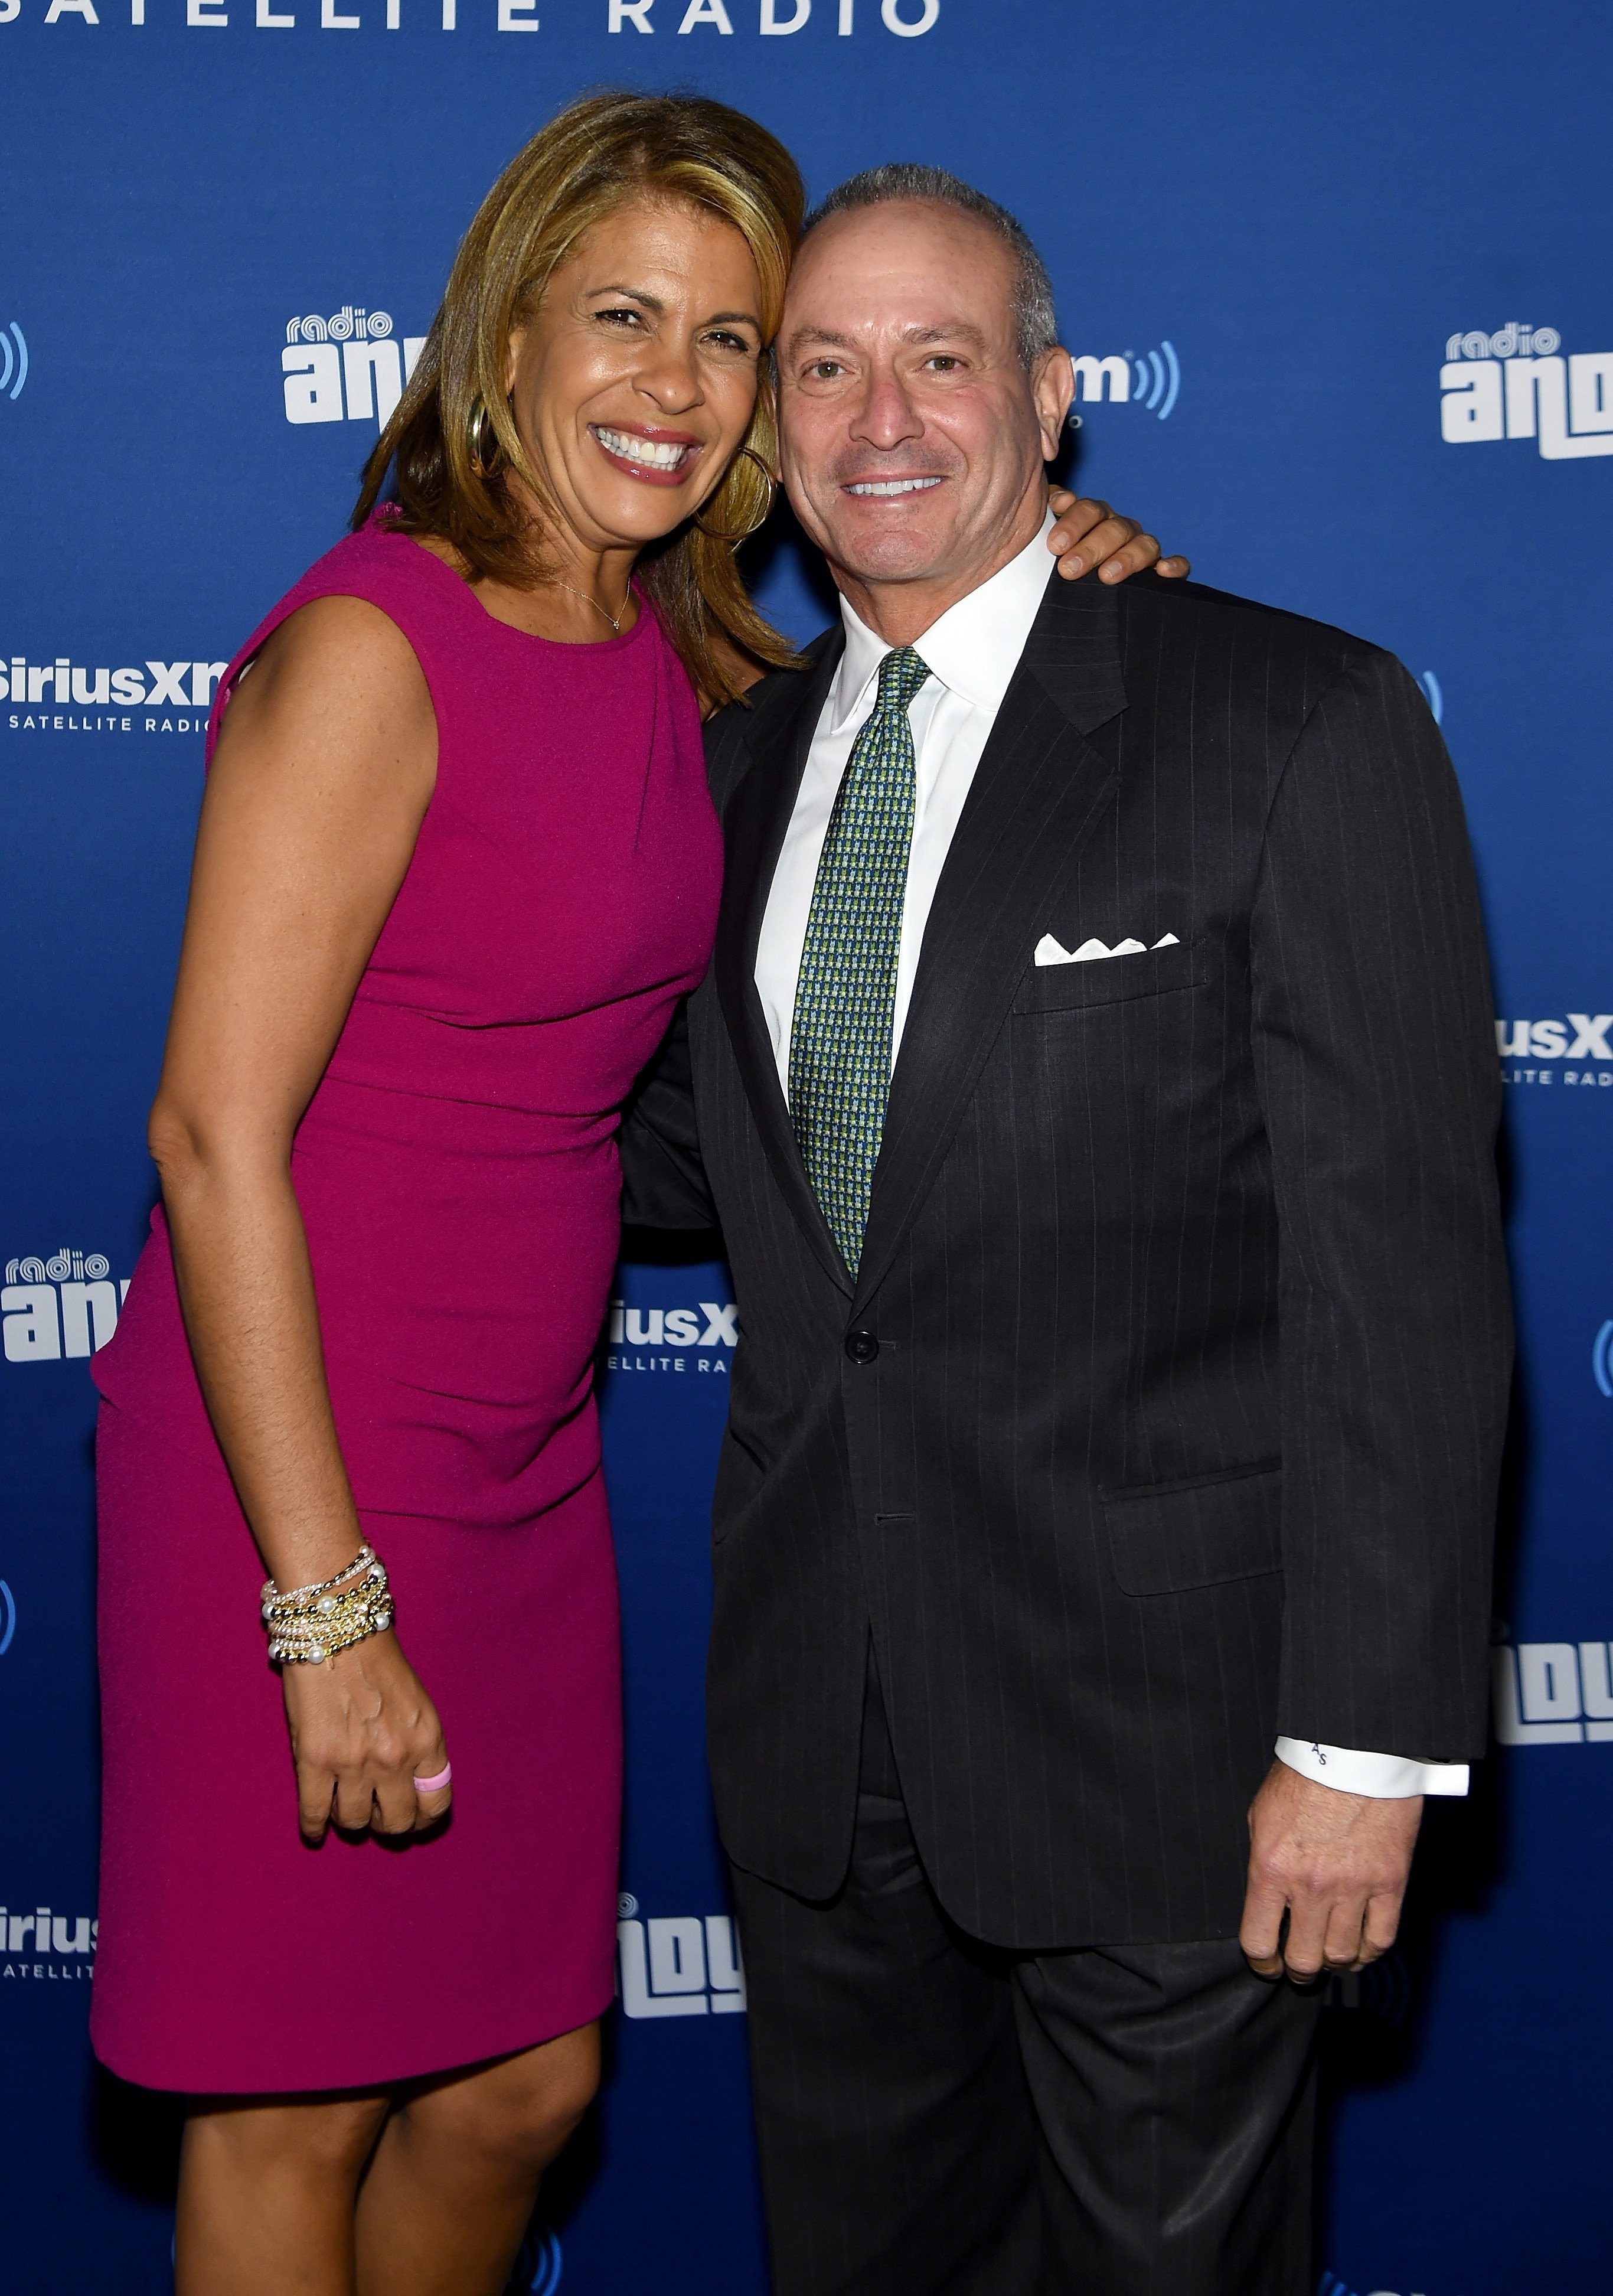 Hoda Kotb and Joel Schiffman attend the launch of SiriusXM's Radio Andy in New York City on October 22, 2015 | Photo: Getty Images